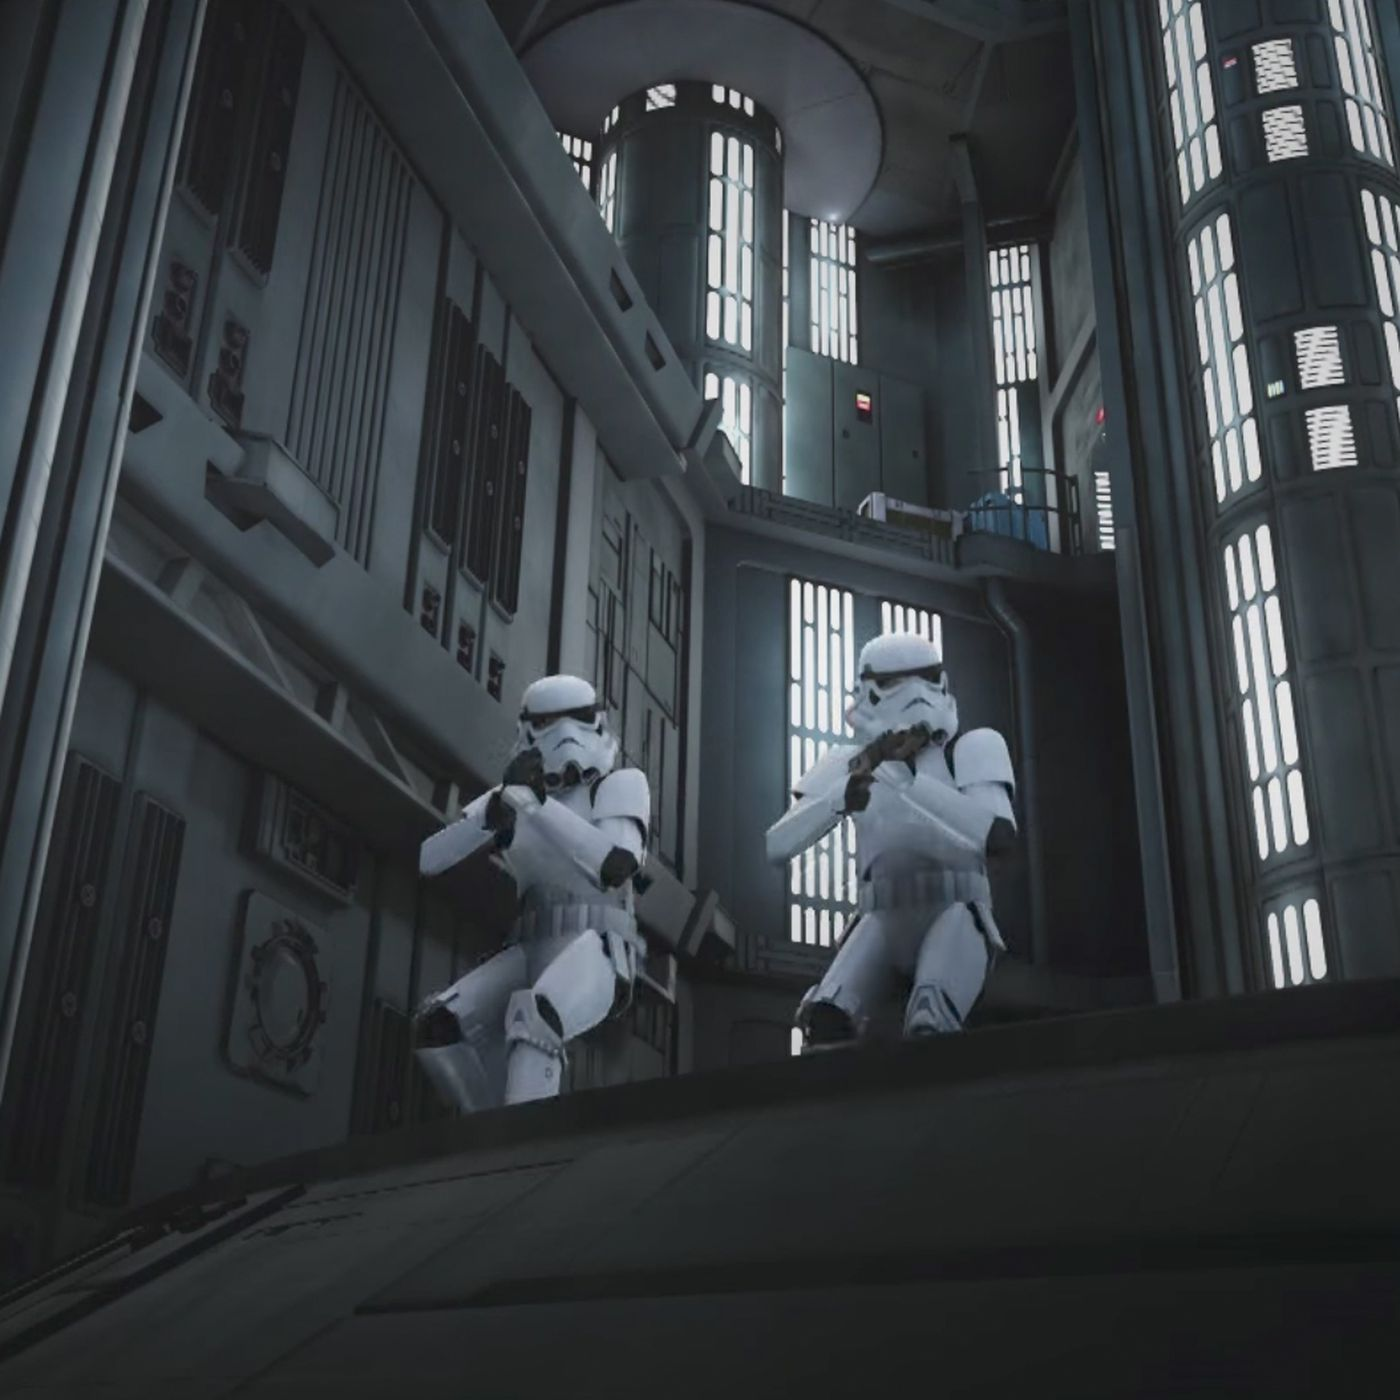 Tickets for The Void's Star Wars VR adventure are now on sale - The